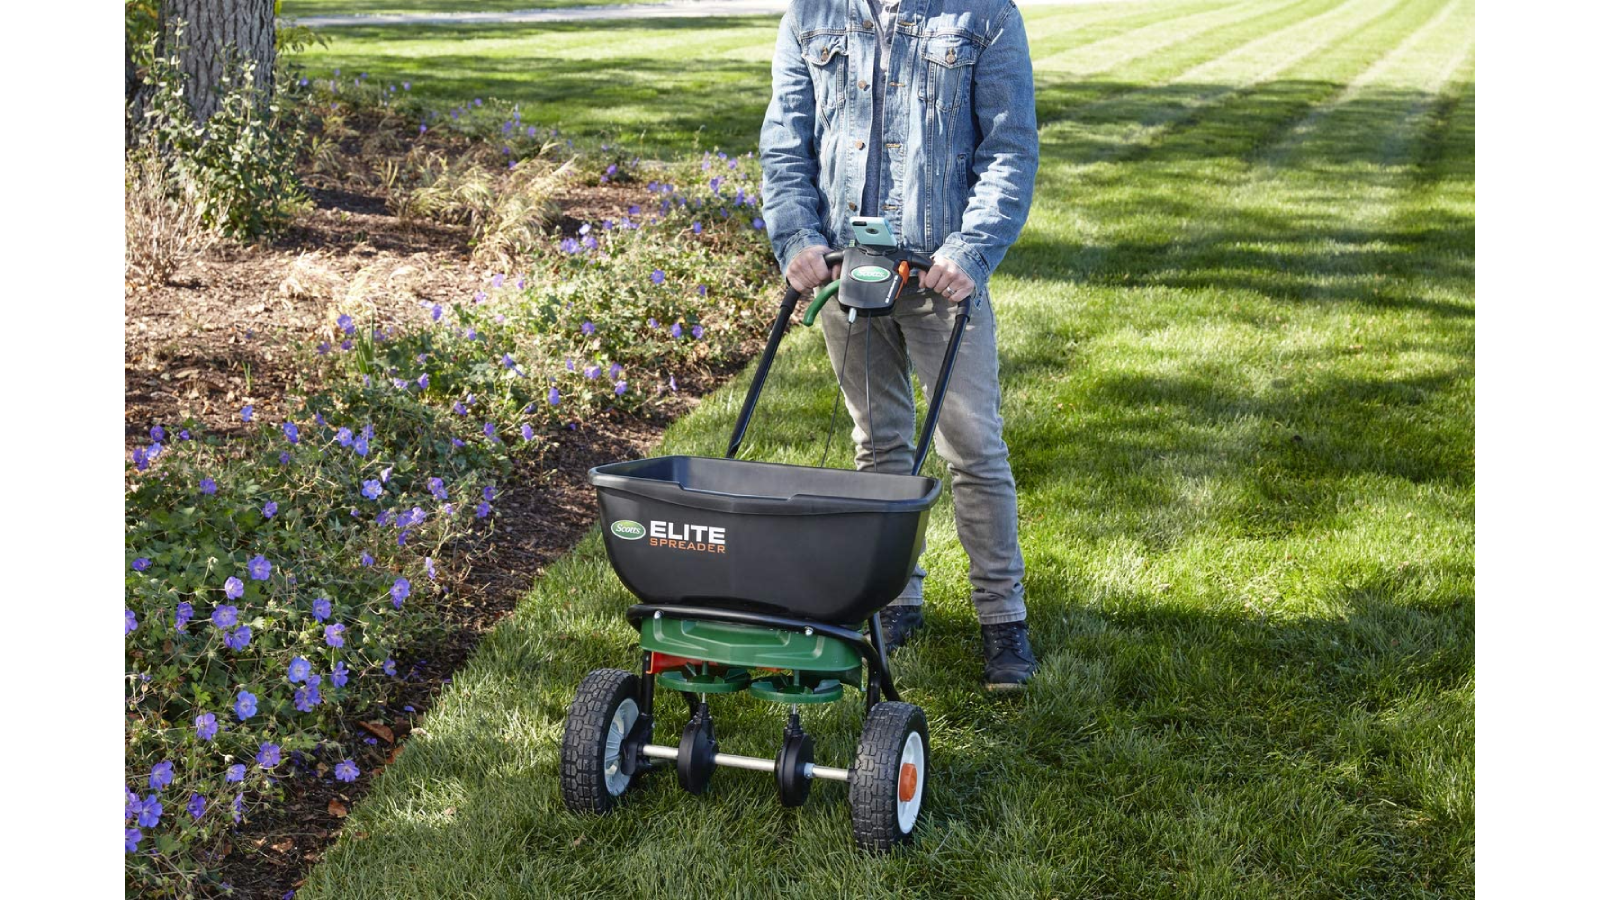 Man pushing a seed spreader in the garden